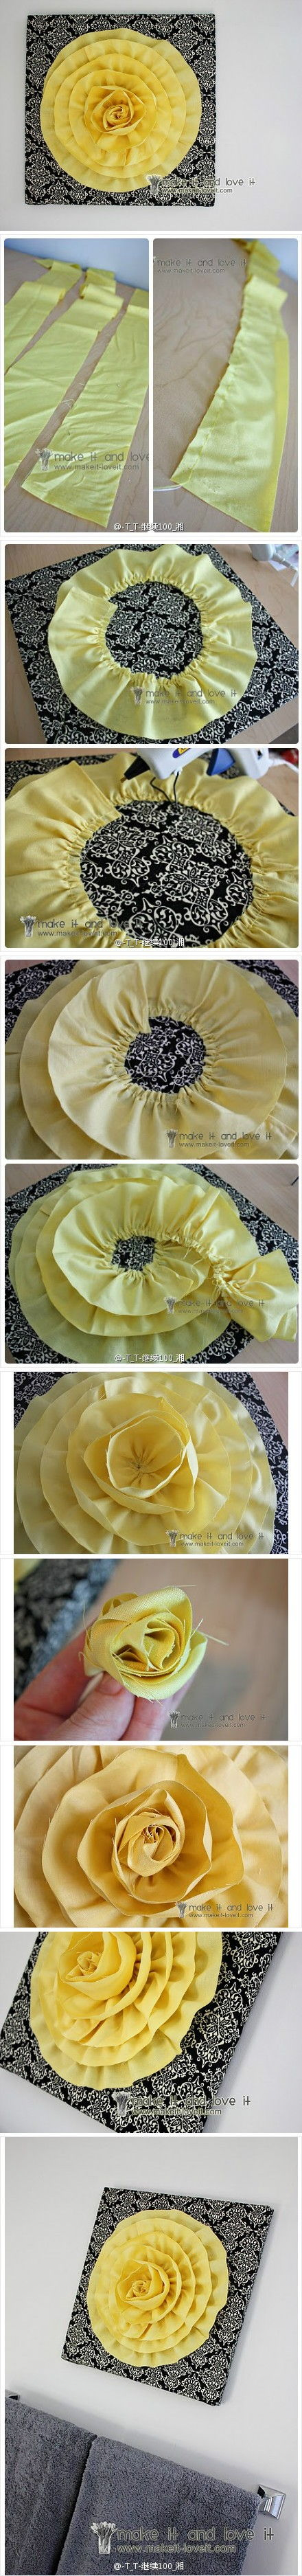 how to make cloth flowers tutorial